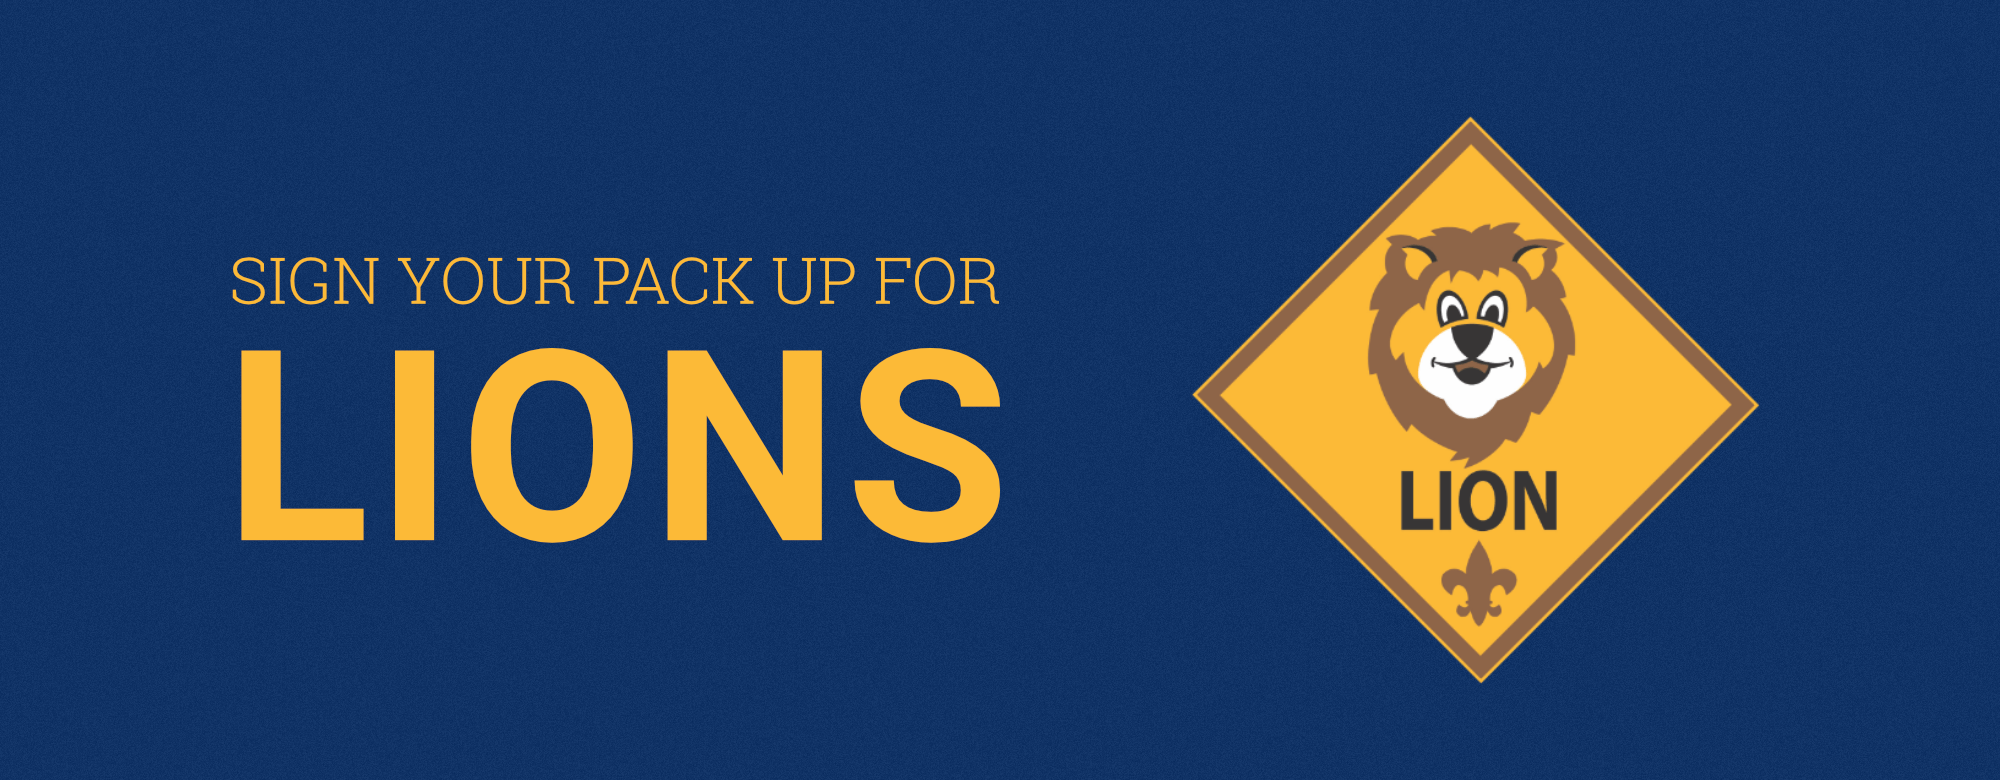 Sign your pack up for the Lions pilot program.